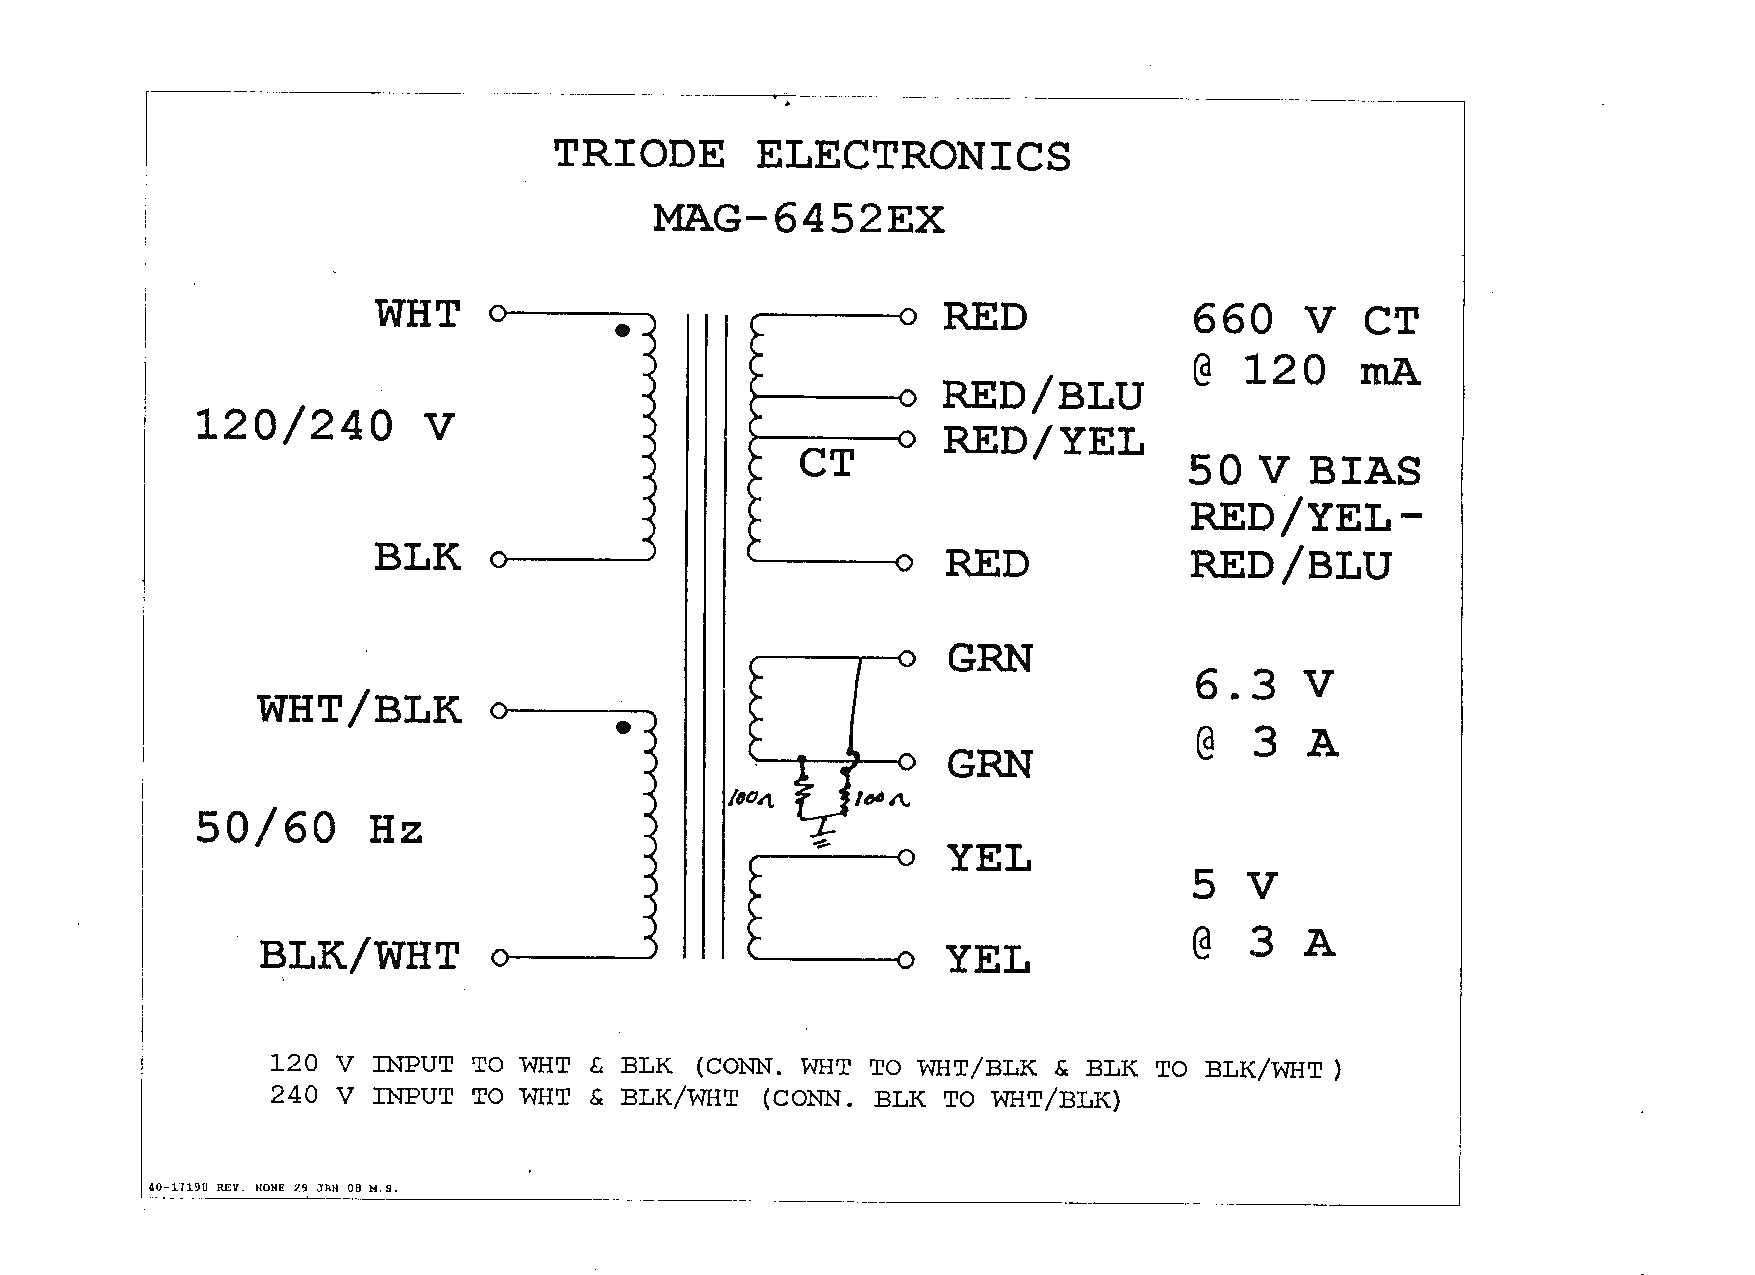 3 phase buck boost transformer wiring diagram Collection-3 phase buck boost transformer wiring diagram Download Buck Boost Transformer Wiring Diagram Free Diagrams 13-i